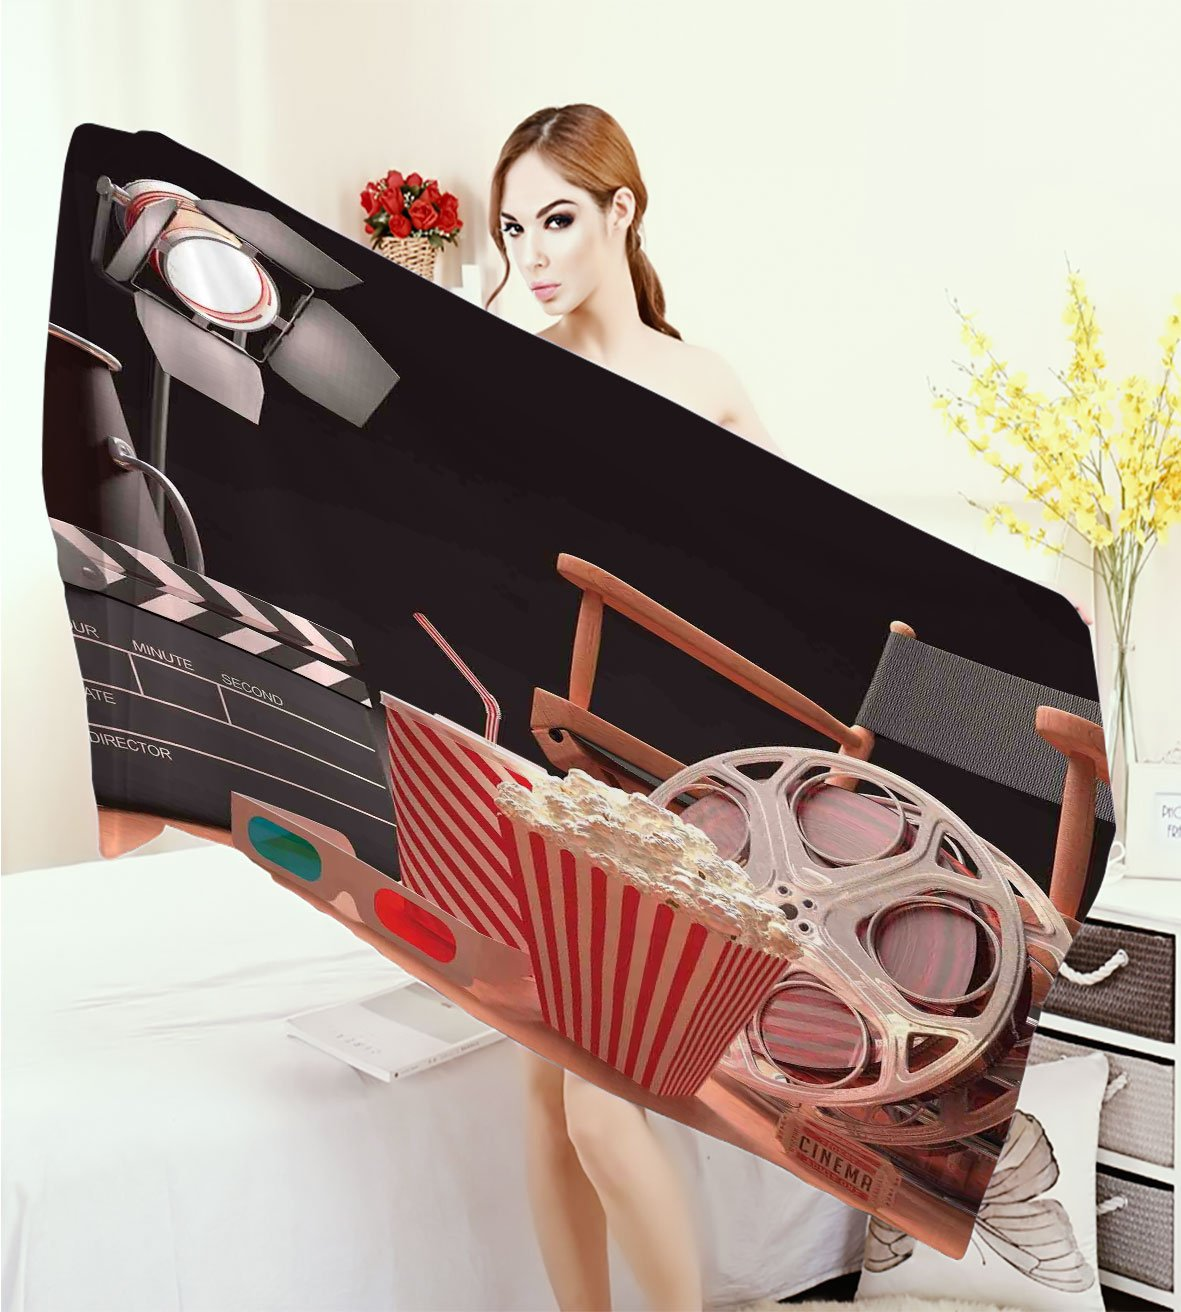 homecoco Movie Theater Wrap Towels Objects of the Film Industry Hollywood Motion Picture Cinematography Concept Quick-Dry Towels Multicolor